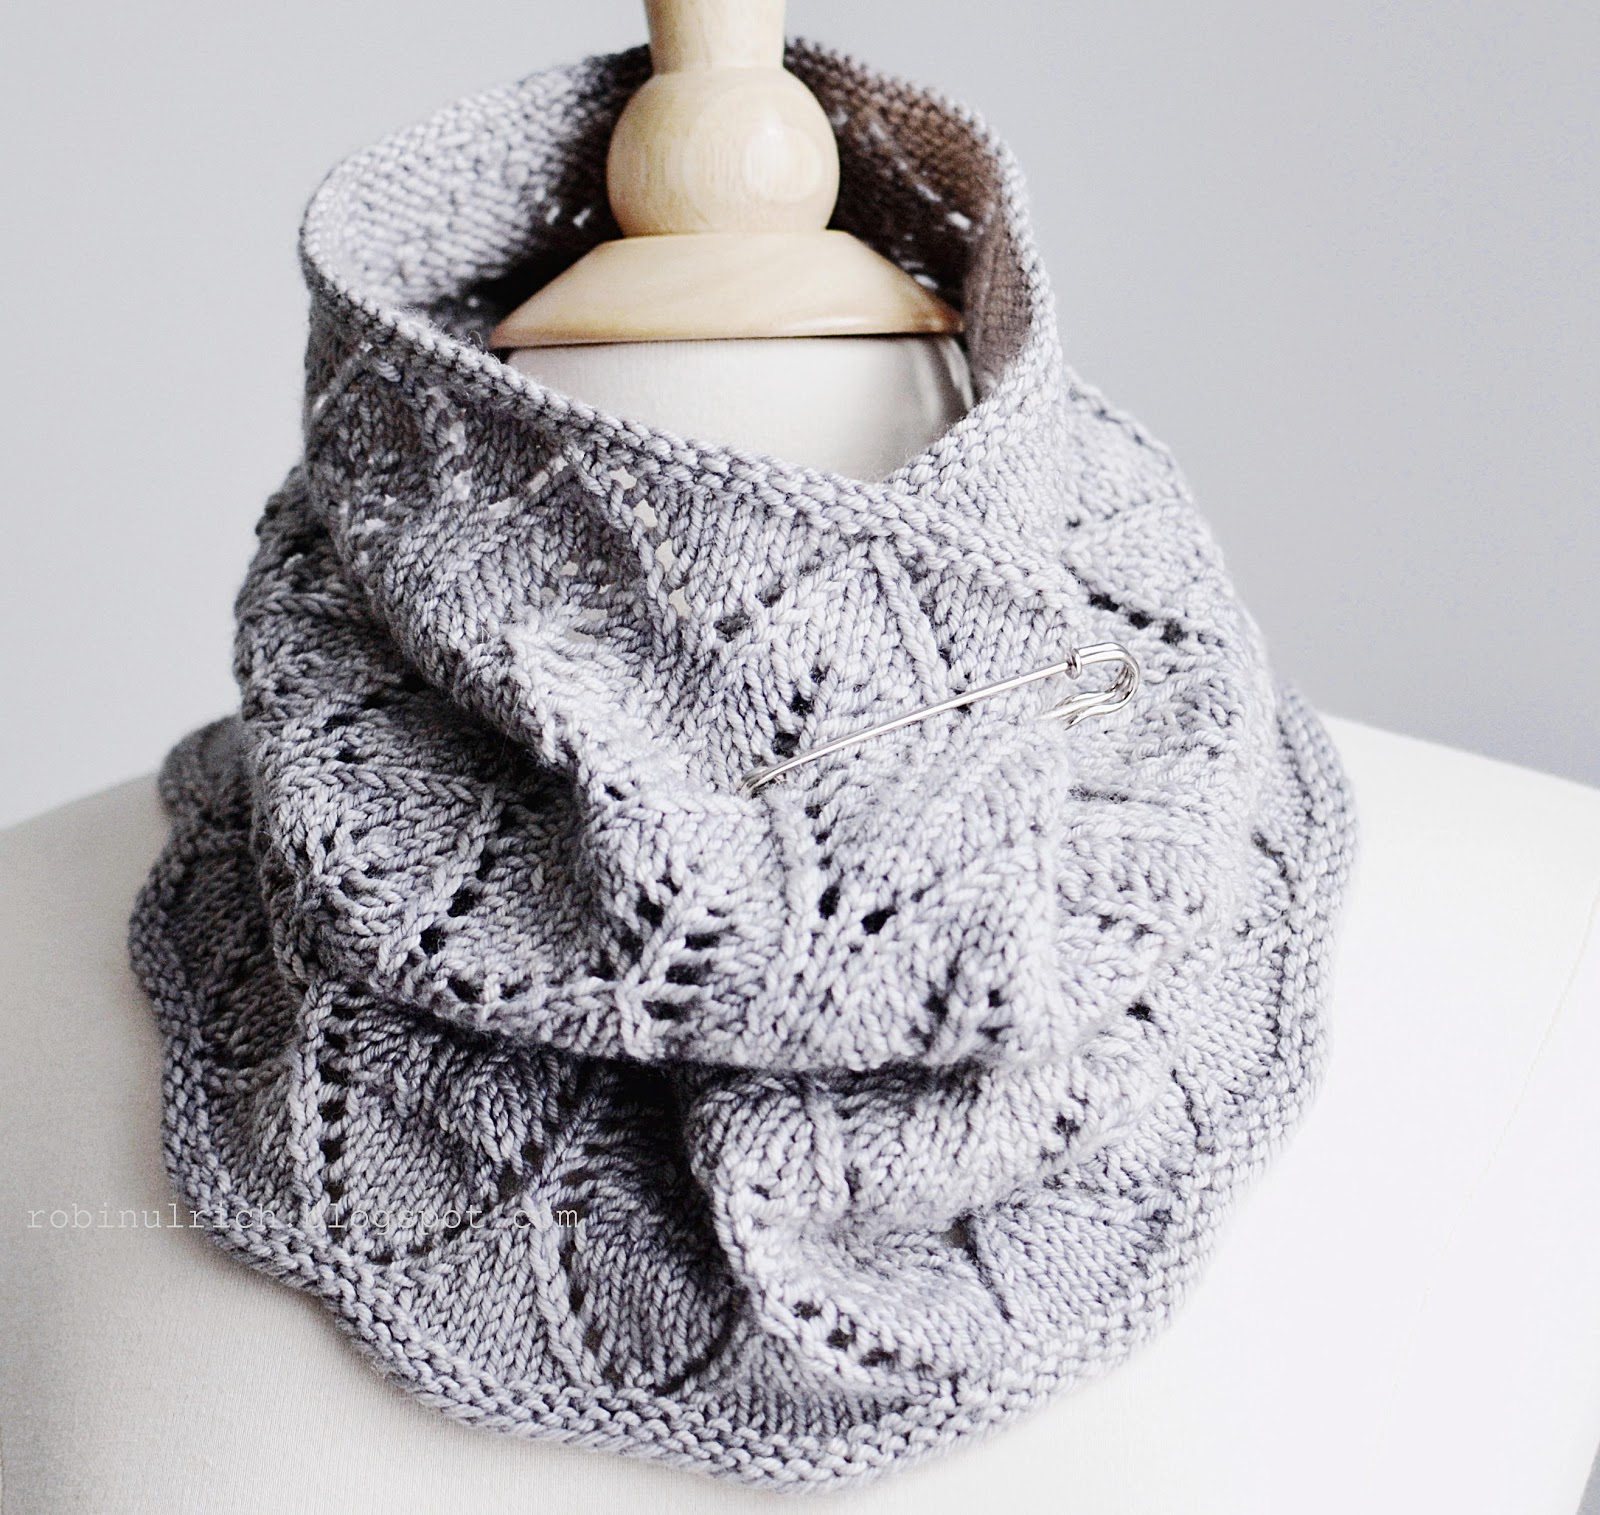 Lace Knitting Patterns In The Round : Robin Ulrich Studio: New Knitting Pattern - Greyhaven